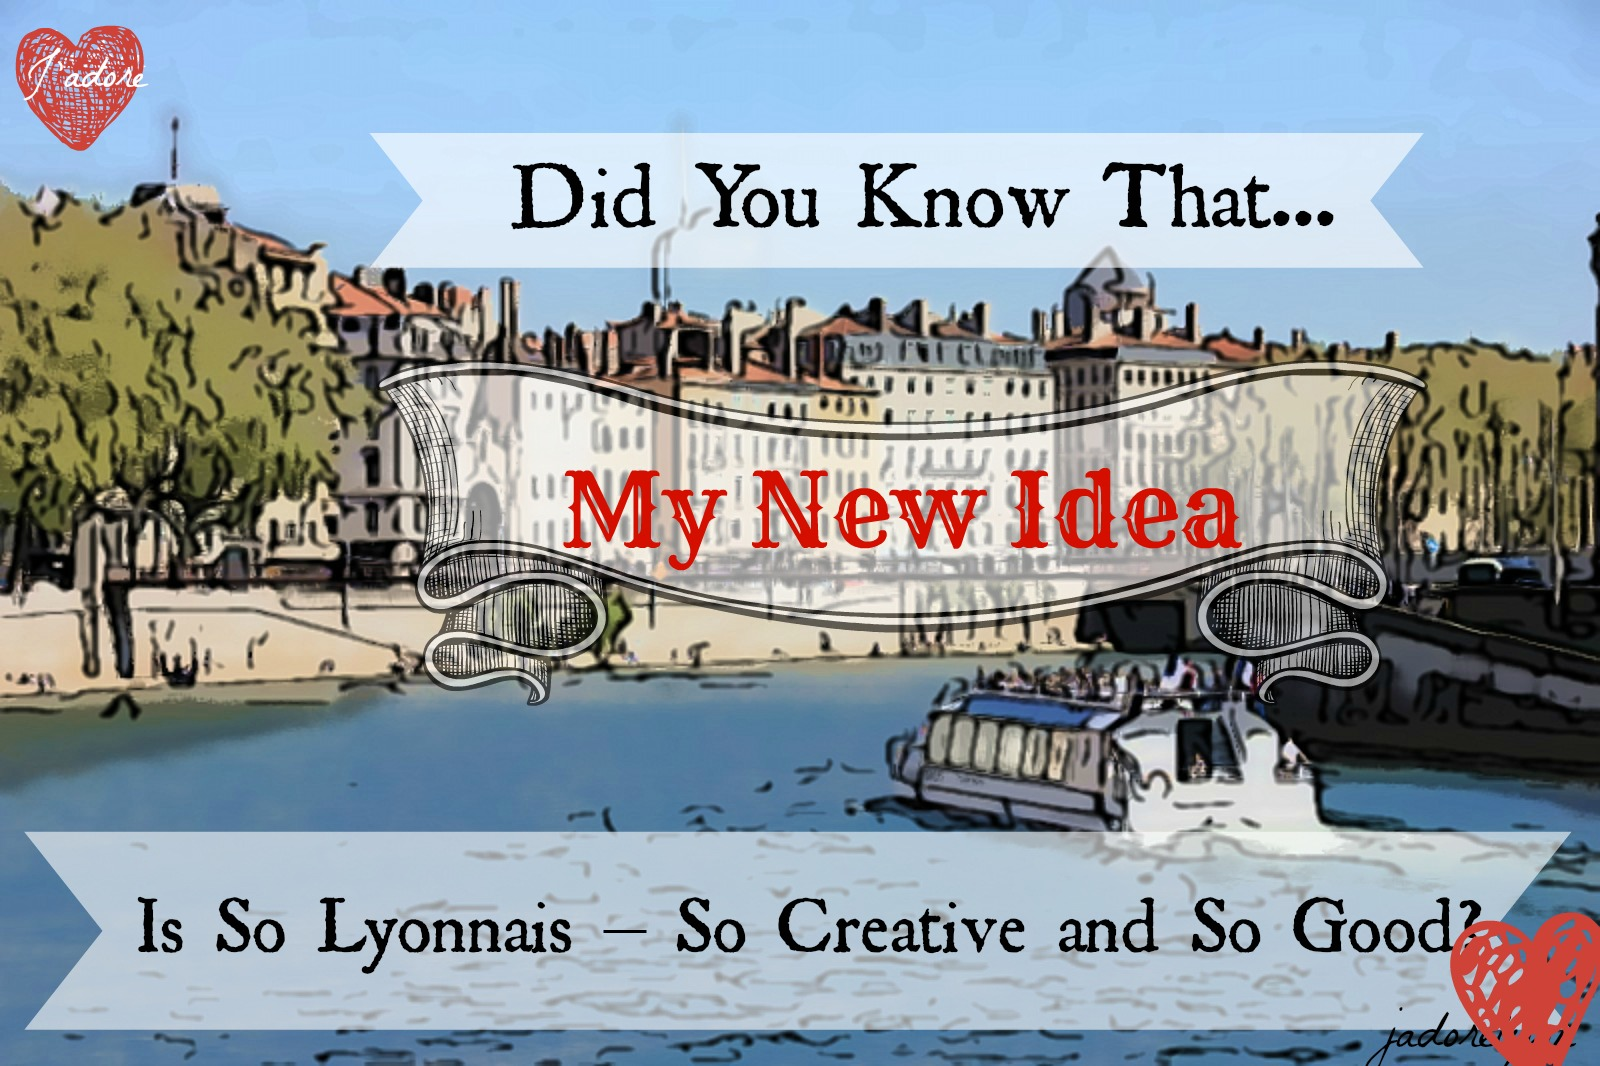 Did You Know that about my new idea